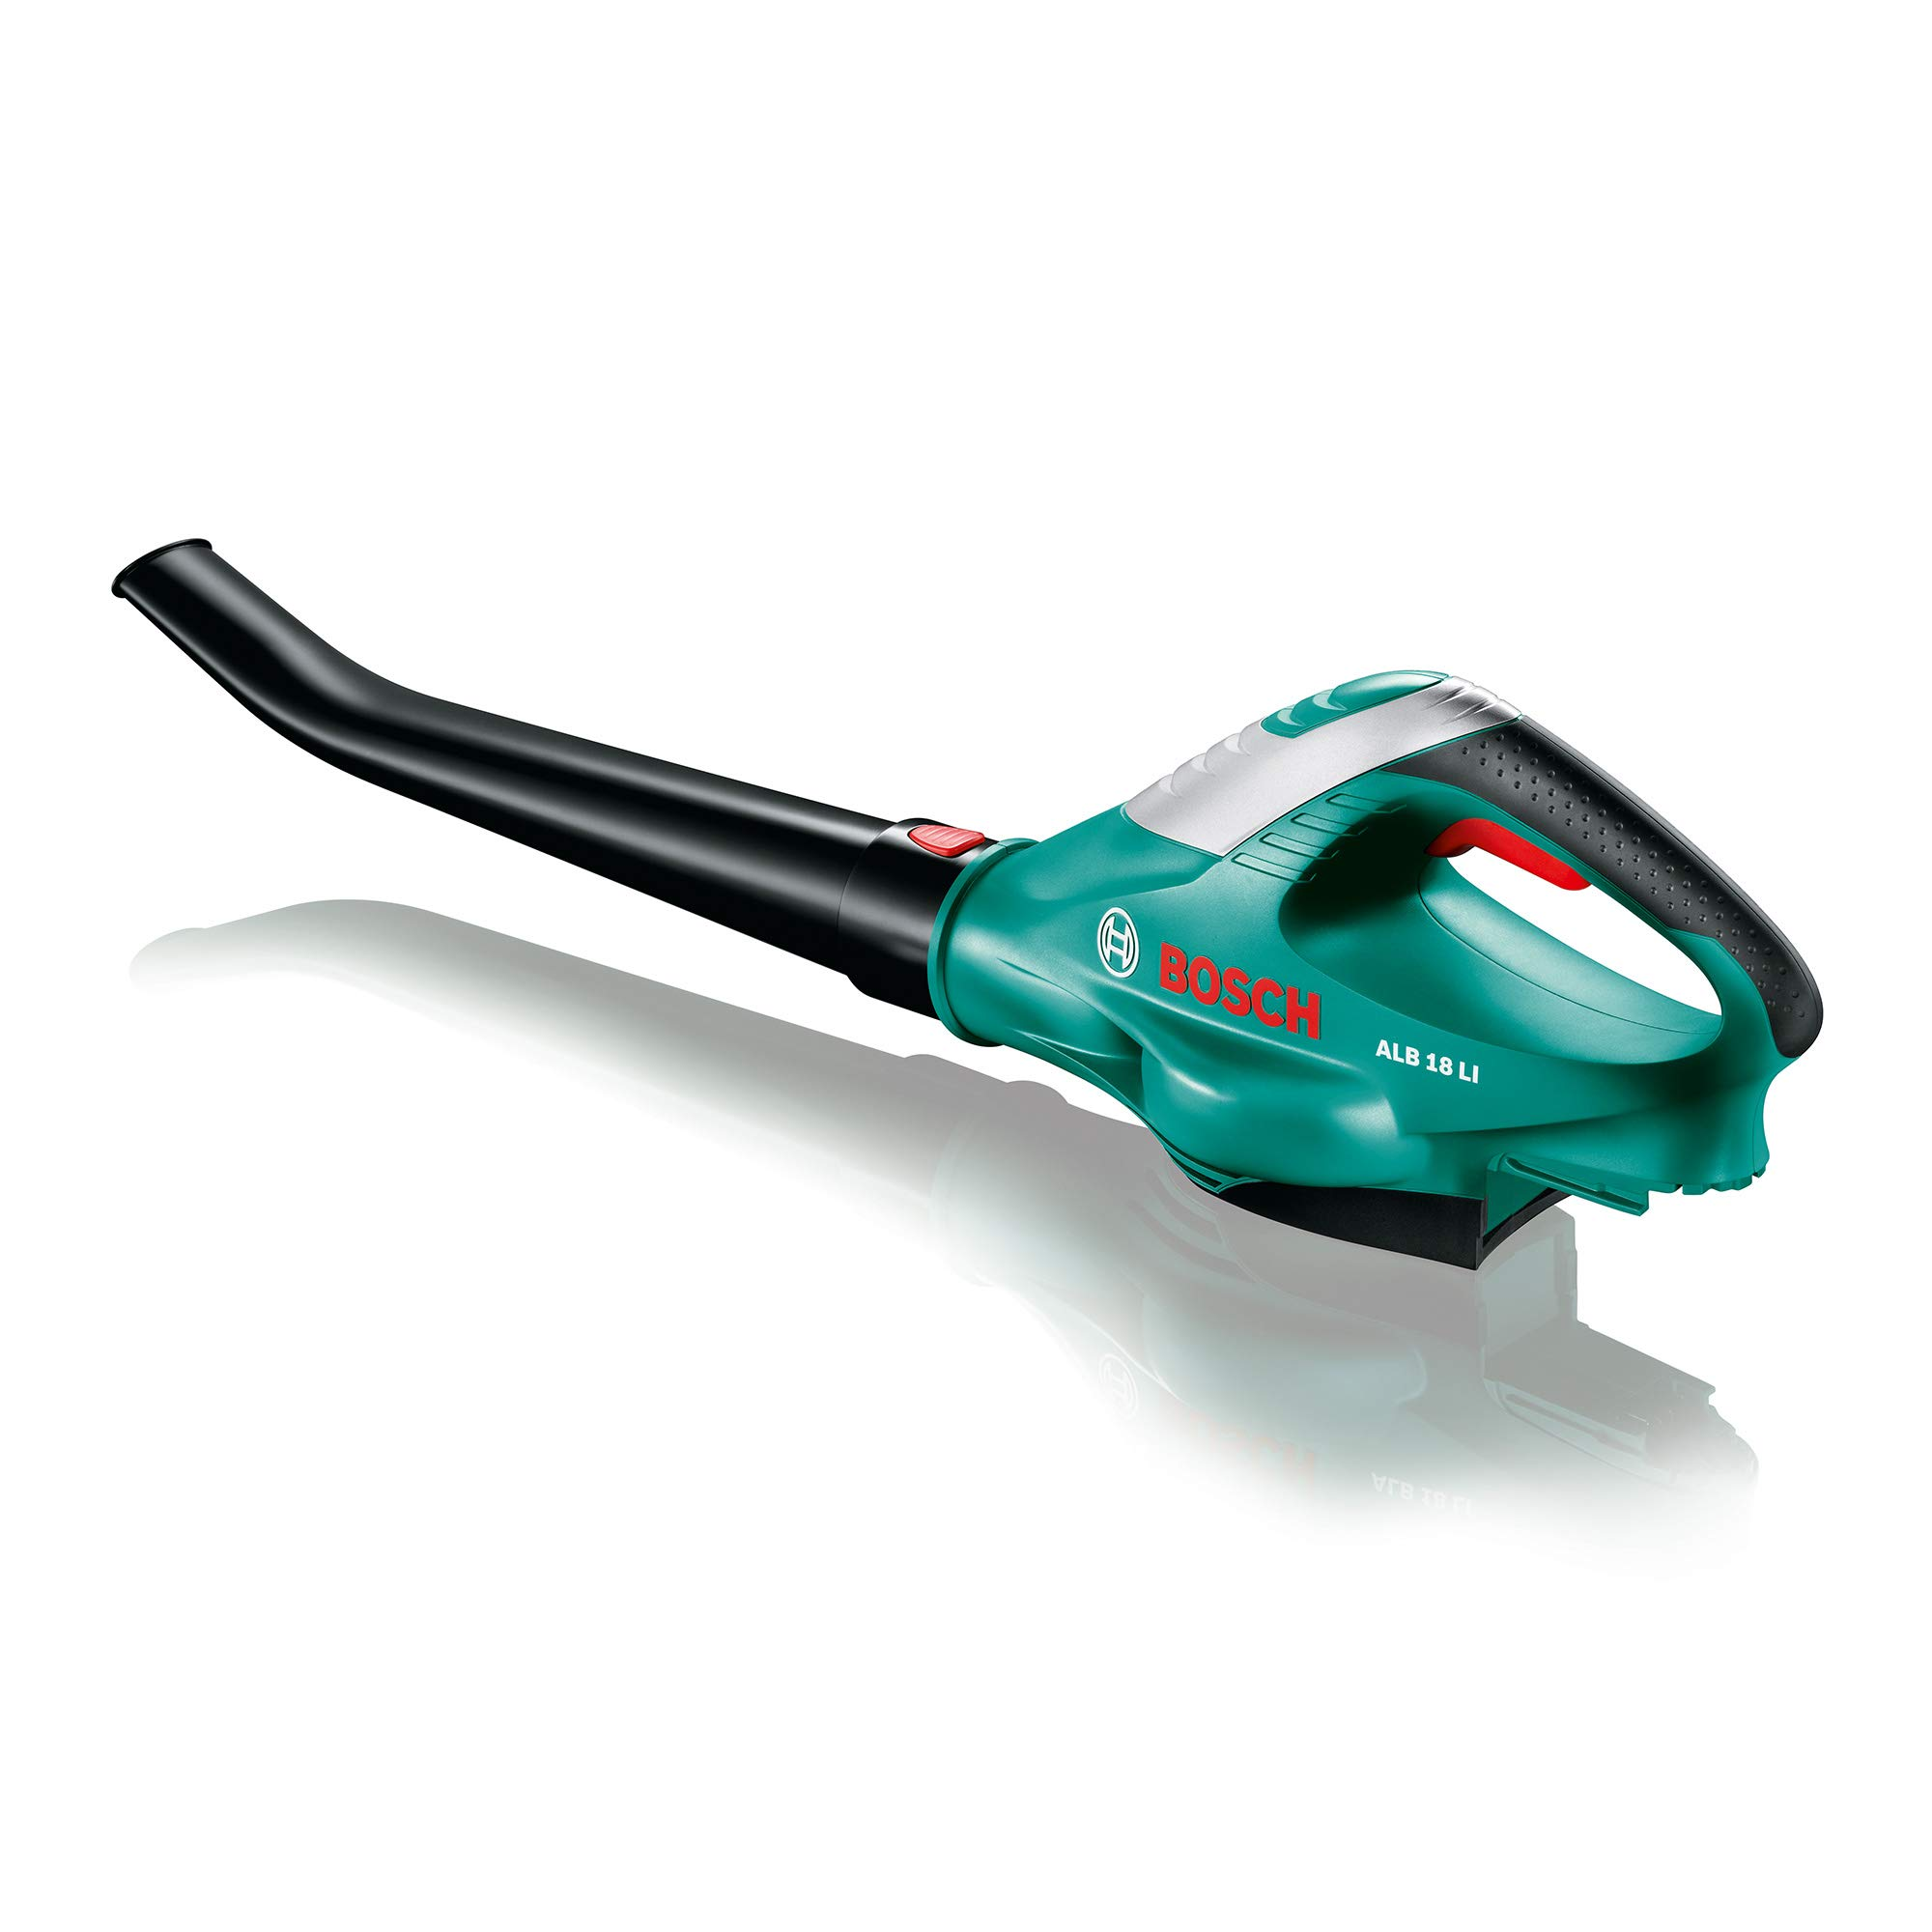 Bosch ALB 18 LI Cordless Leaf Blower Without Battery and Charger